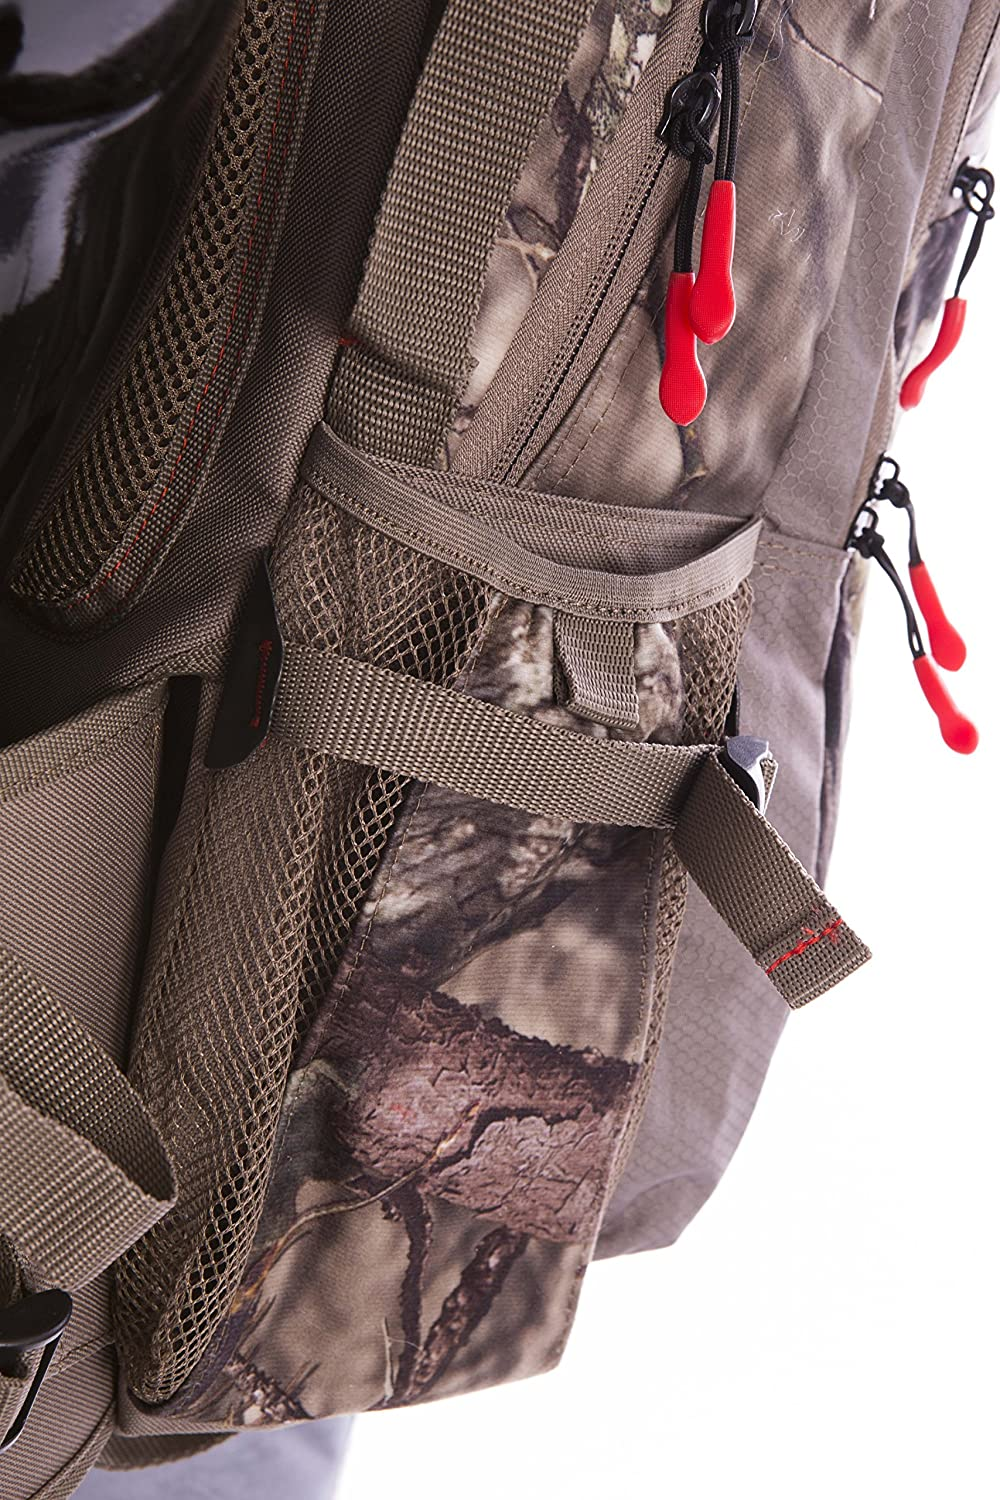 Allen Pagosa Daypack 1800 Cubic Inches